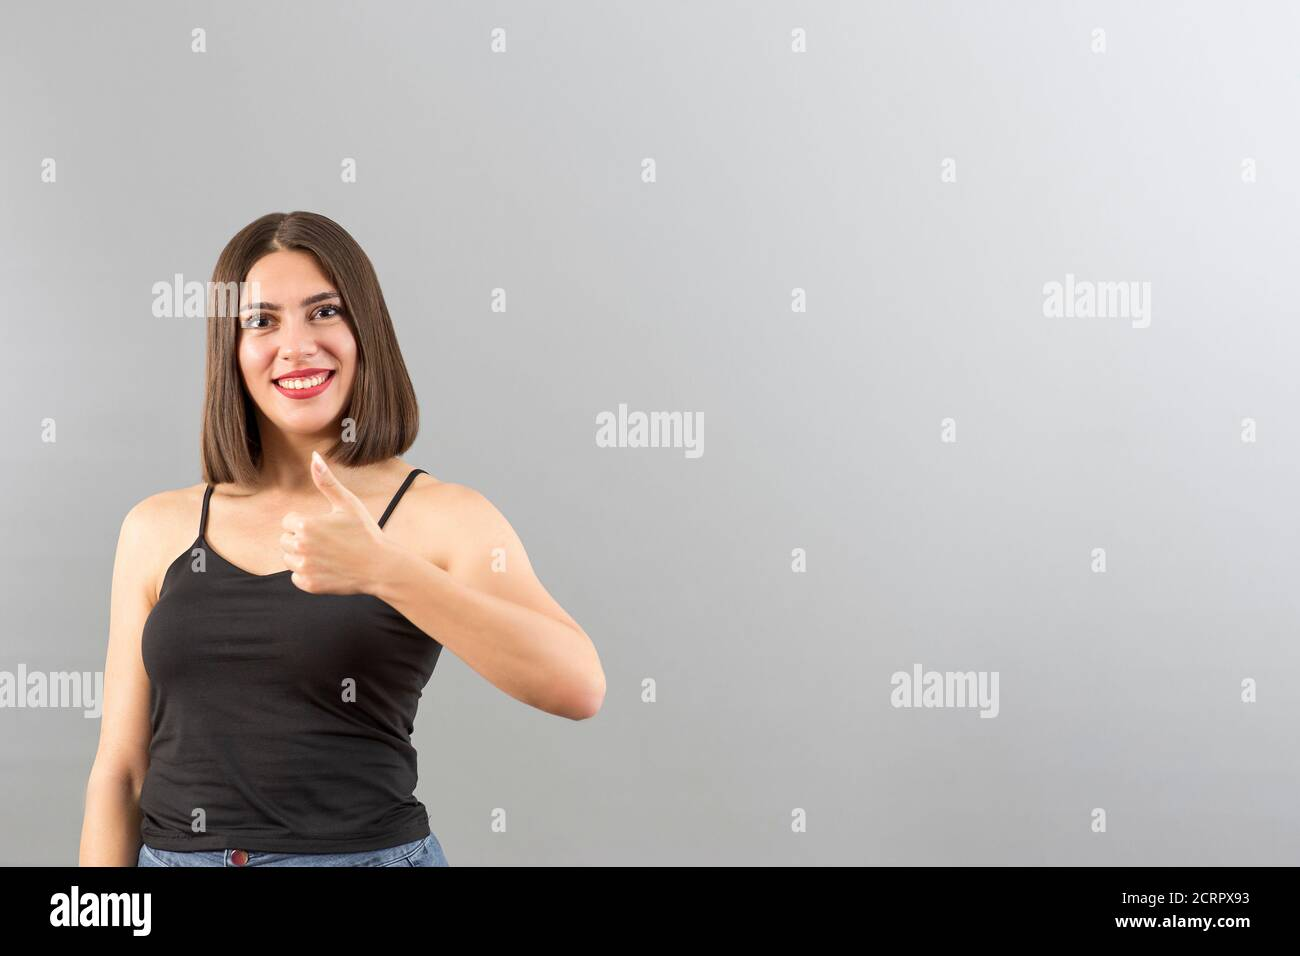 Attractive Turkish woman portrait in positive mood. She is gesturing thumbs up. Stock Photo